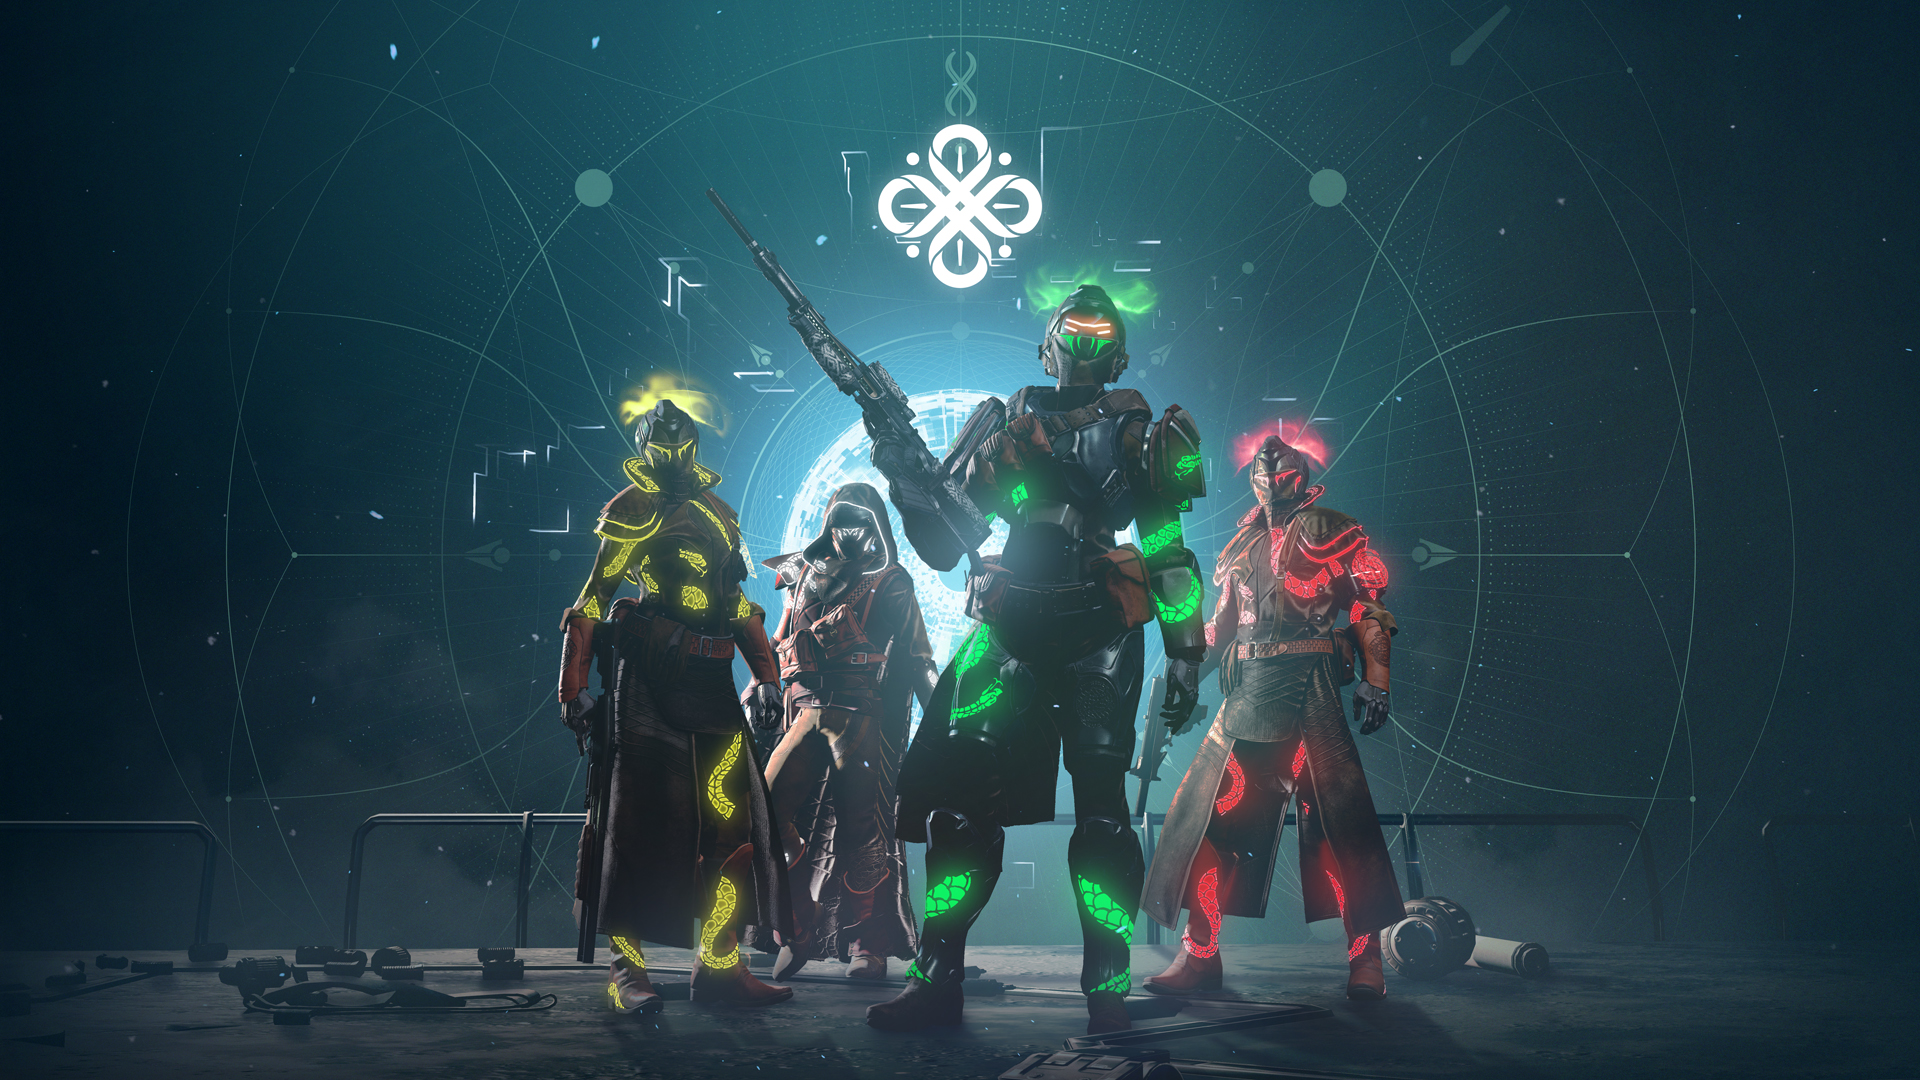 Destiny 2 season of the drifter Gambit Prime roles